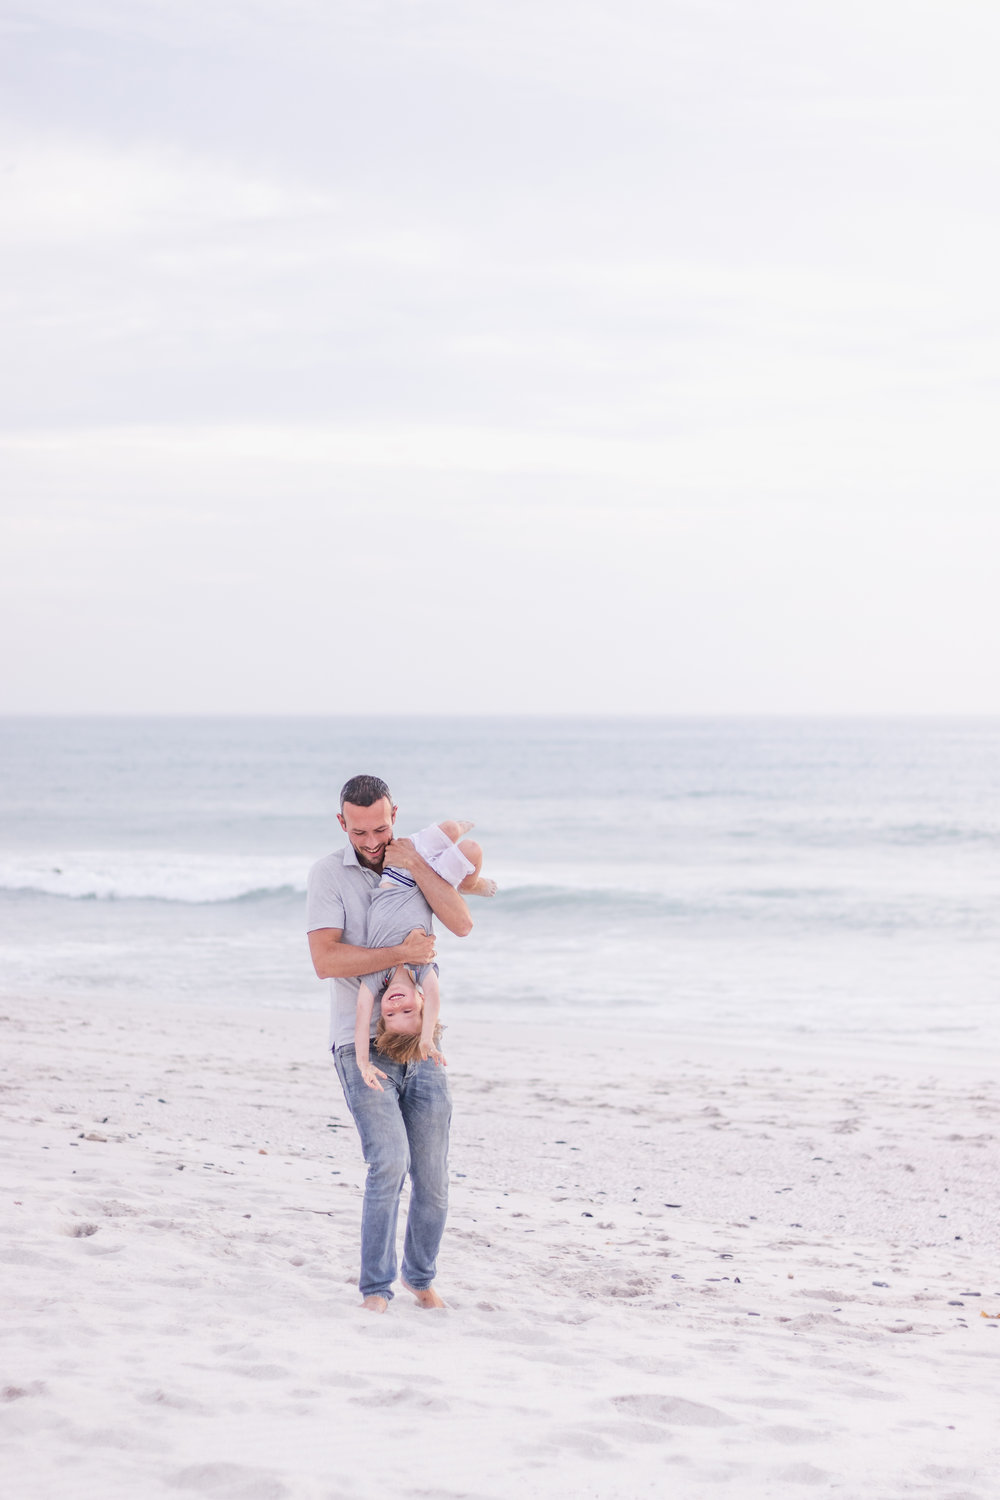 Ken Treloar Photography - Monteban Family Photos - Cape Town 2018 (high-res)-22.jpg